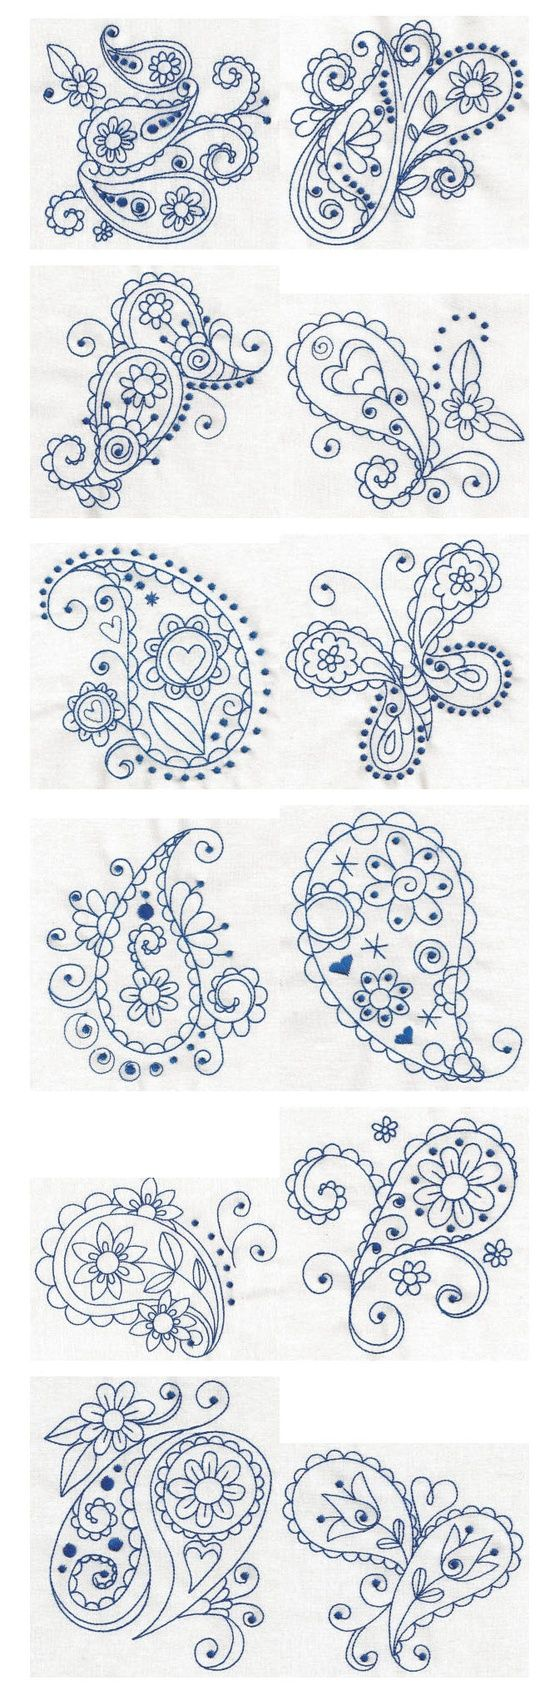 Paisley is a great quilling inspiration!  I need to blend it with floral designs in monograms!